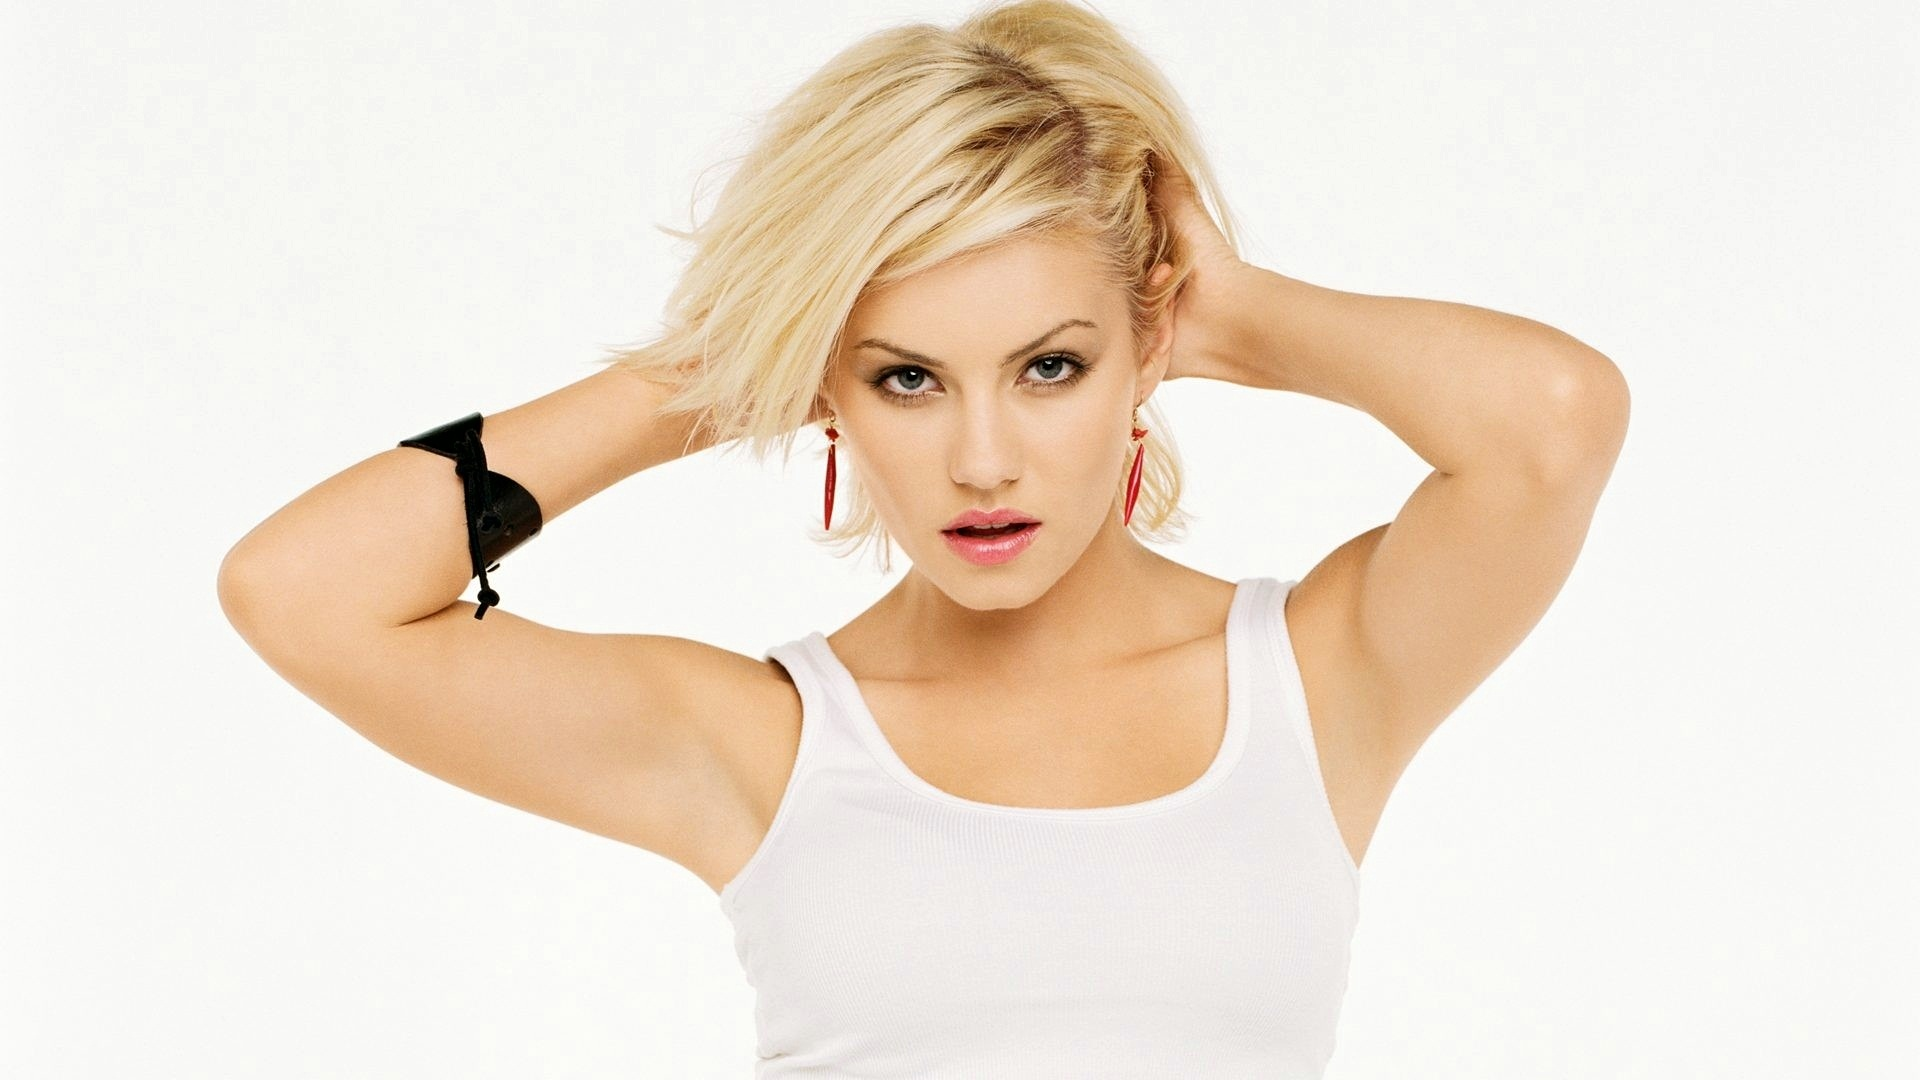 elisha cuthbert wallpapers hd A4